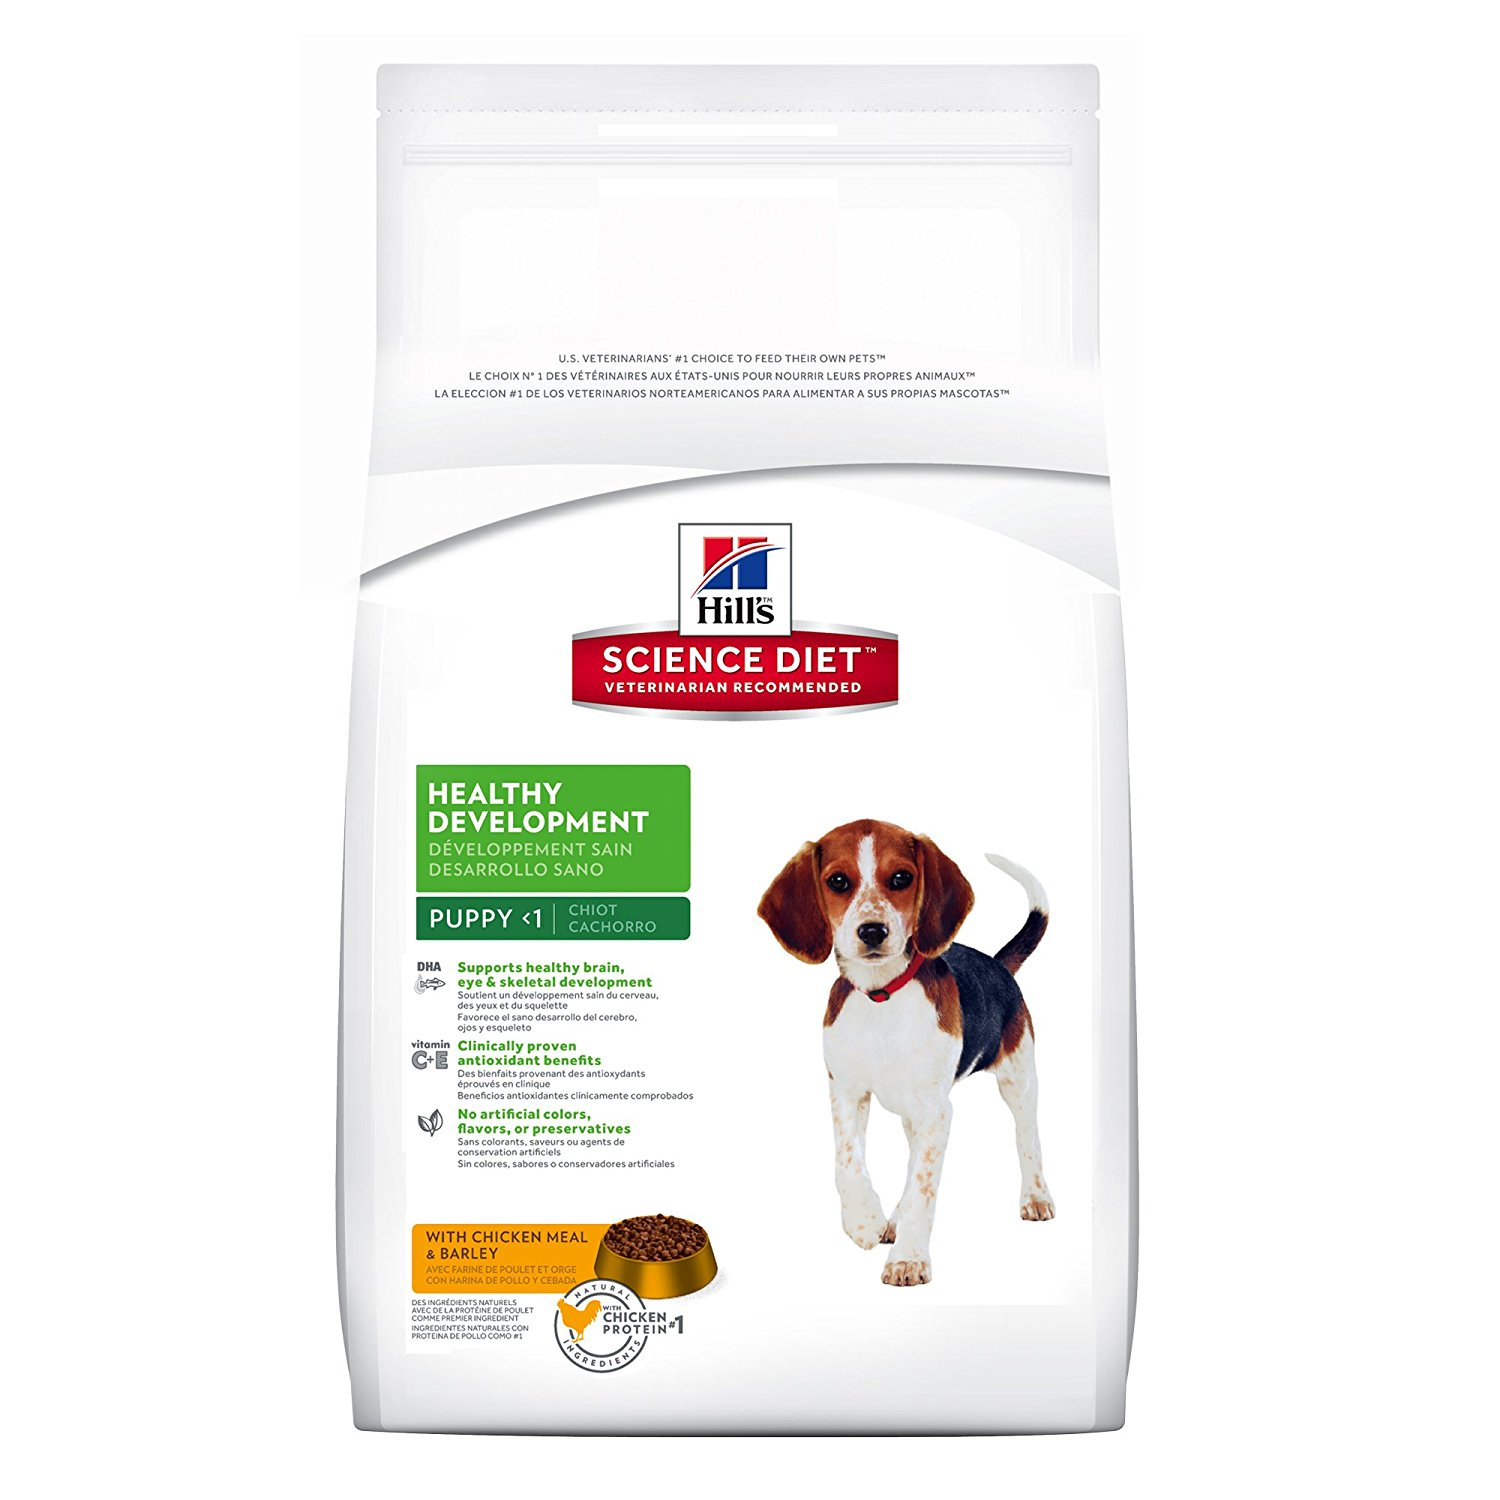 Hill's Science Diet Puppy Food, Healthy Development with Chicken Meal & Barley Dry Dog Food